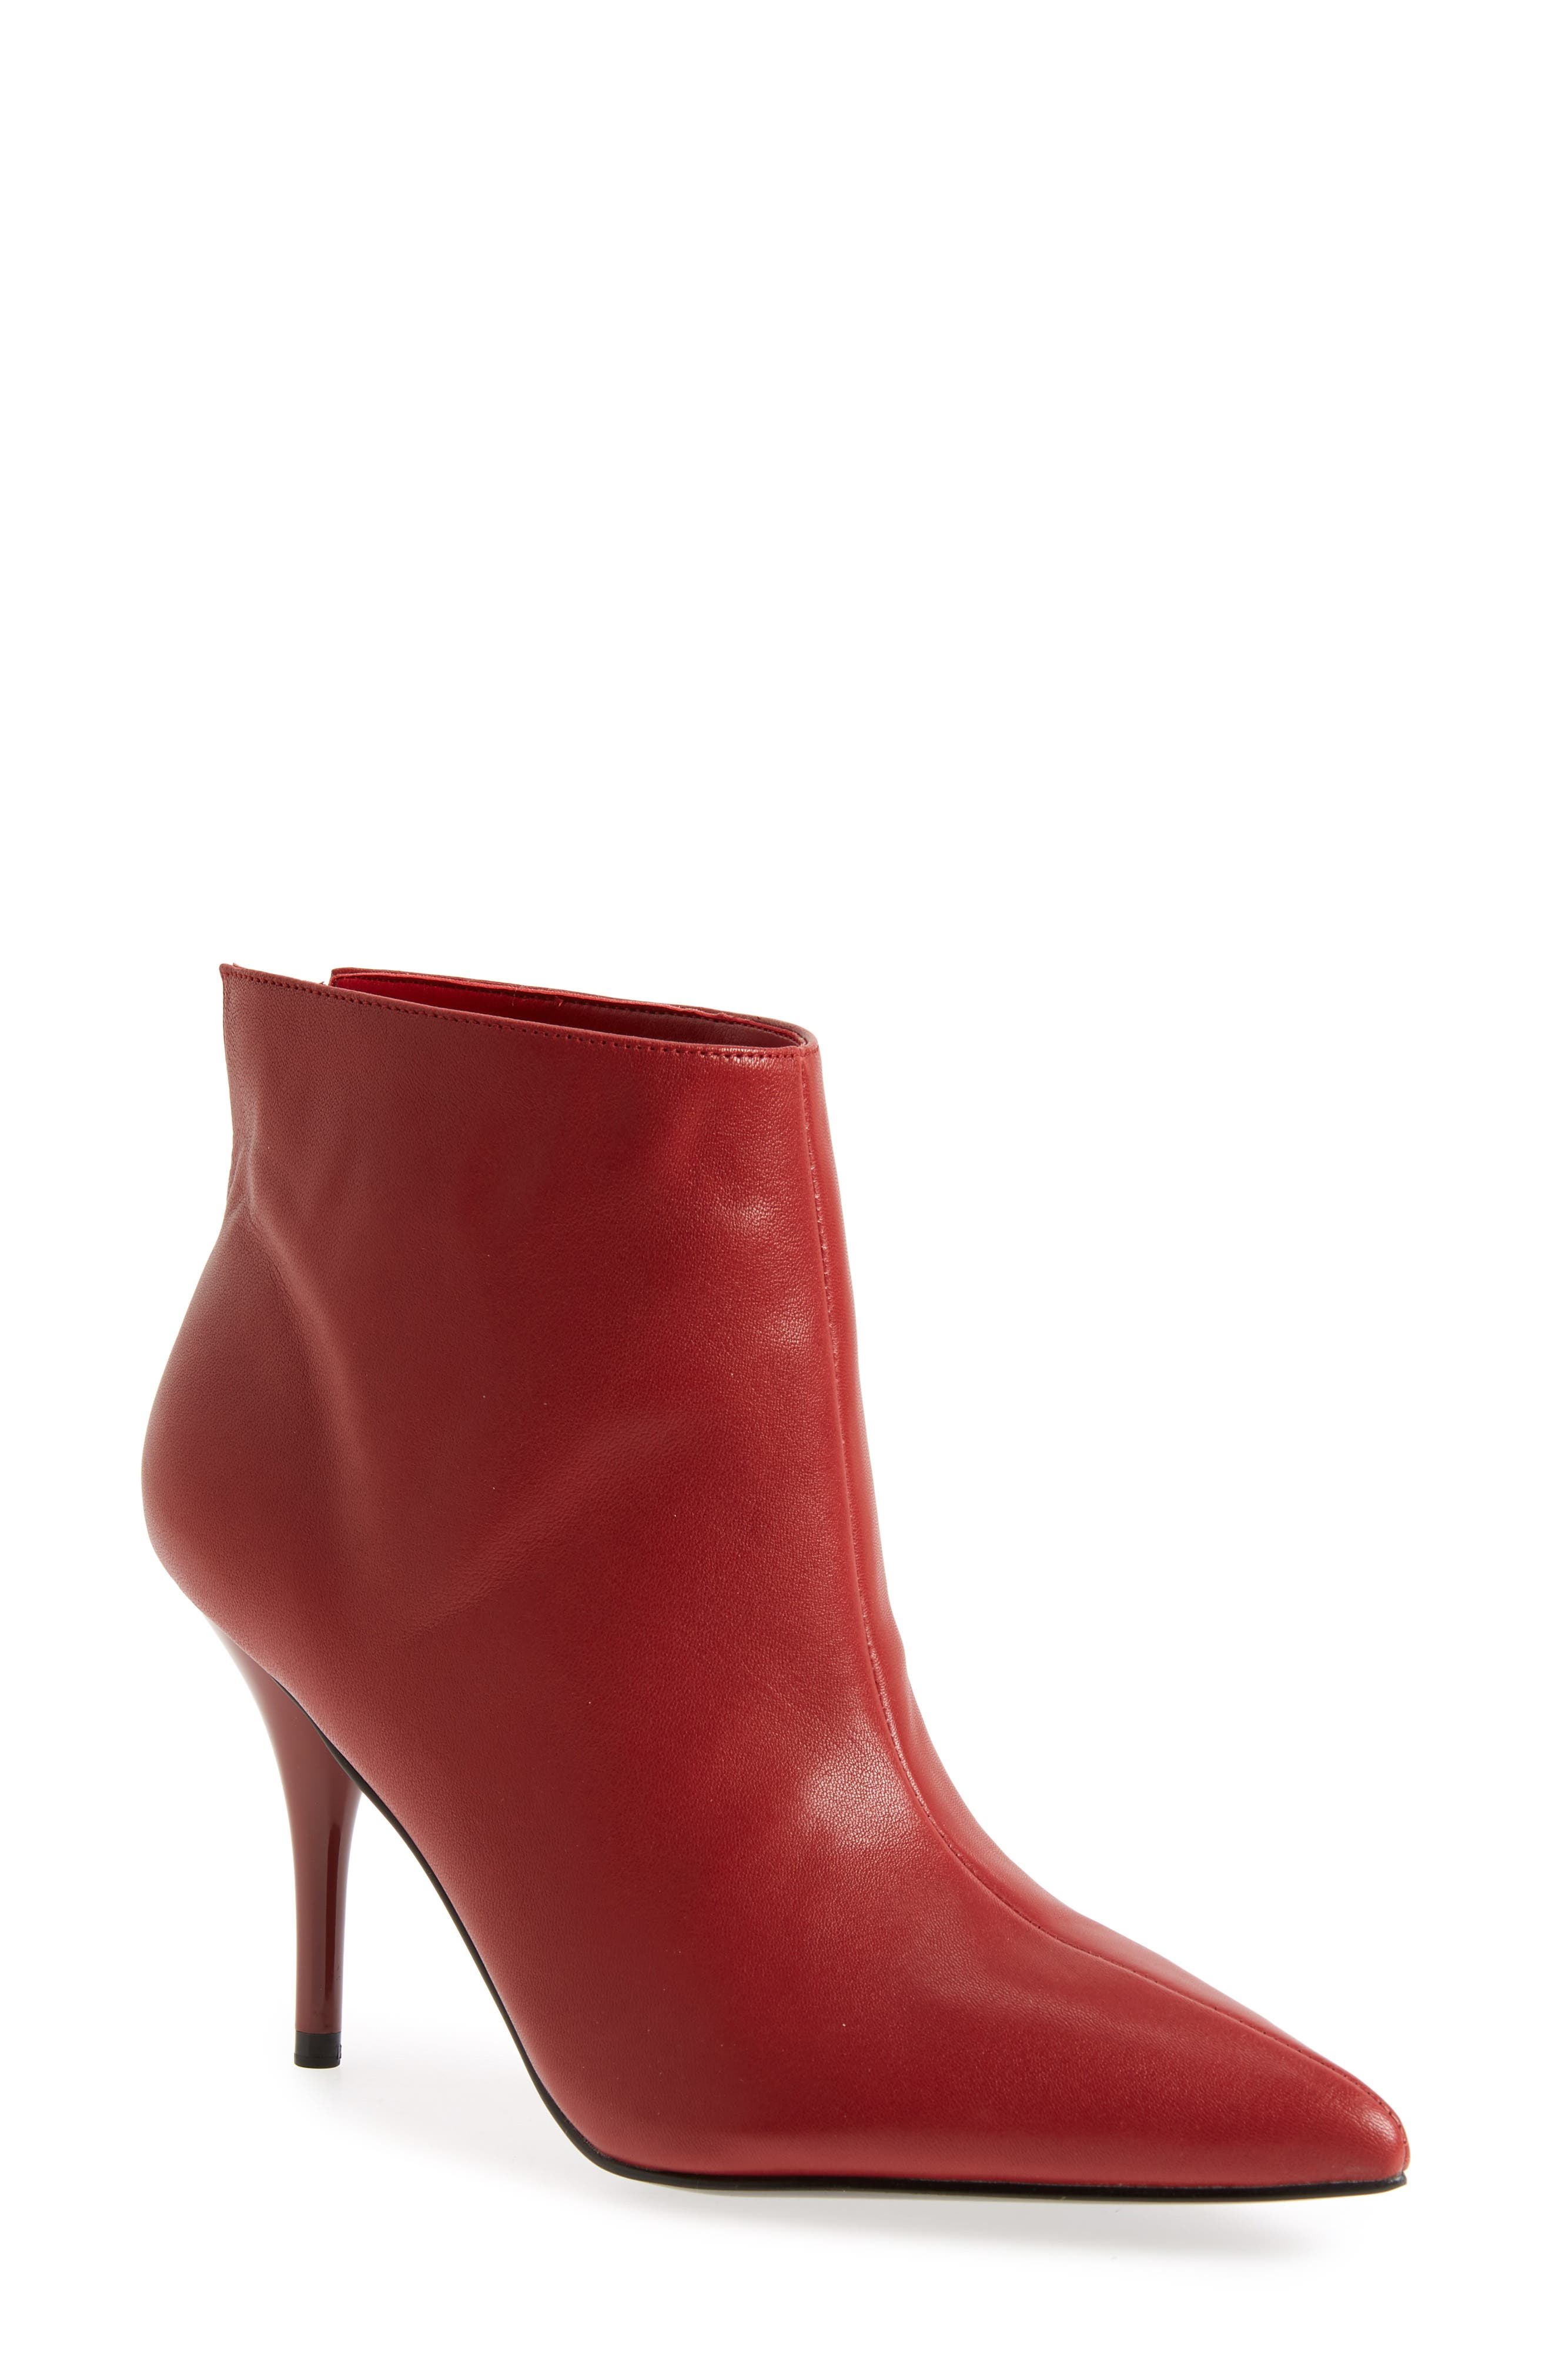 MARC FISHER LTD Fenet Pointy Toe Bootie, Main, color, RED LEATHER